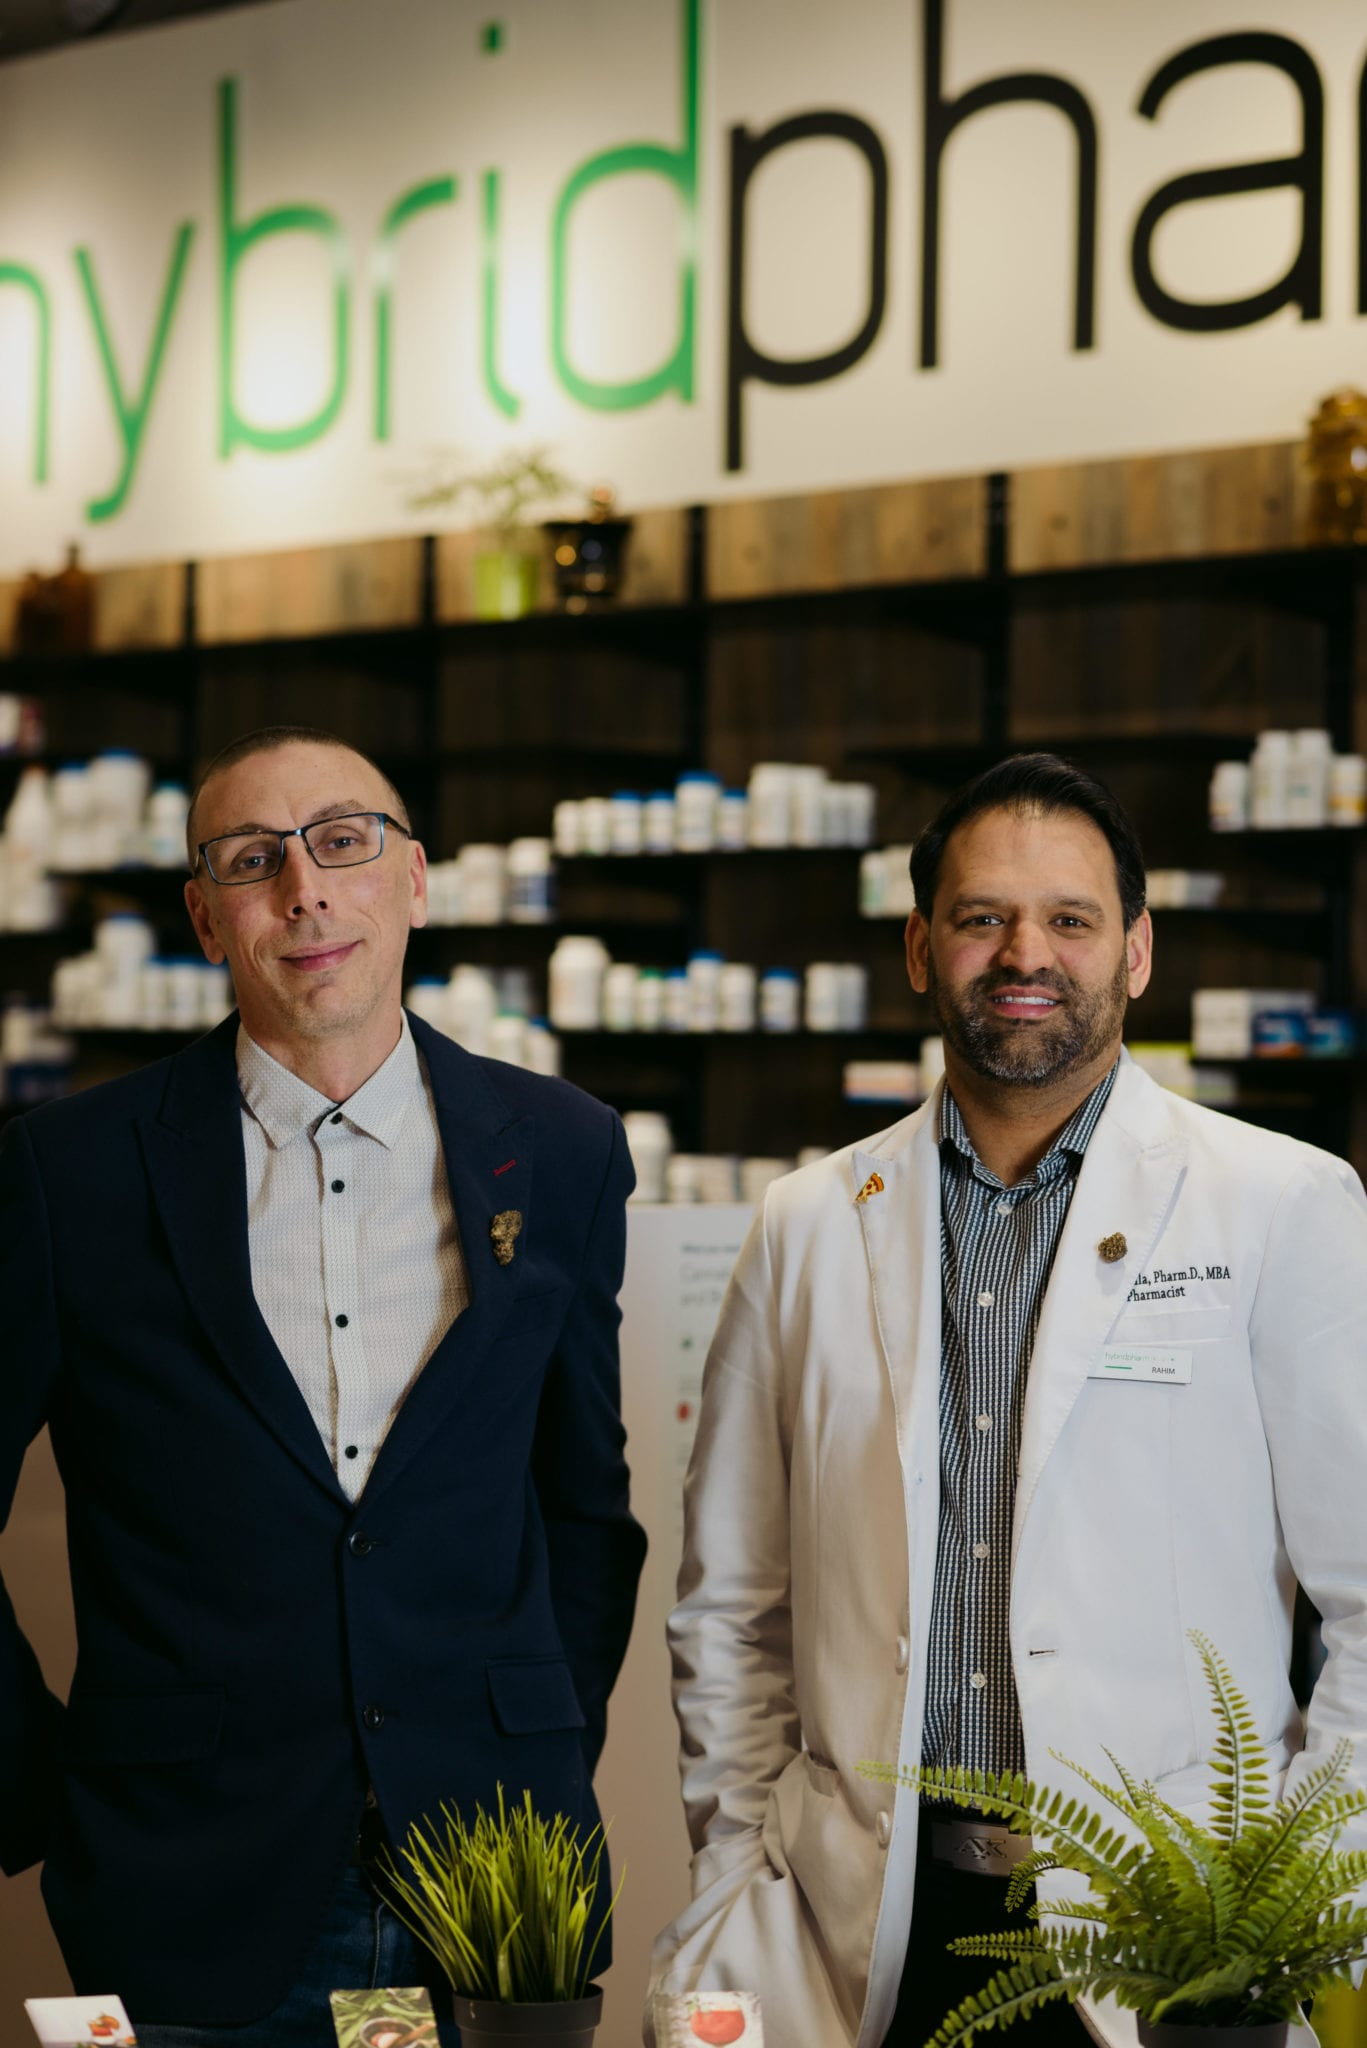 Instagram's cannabis restrictions aren't about the law - Angelo Muscari and Rahim Dhalla